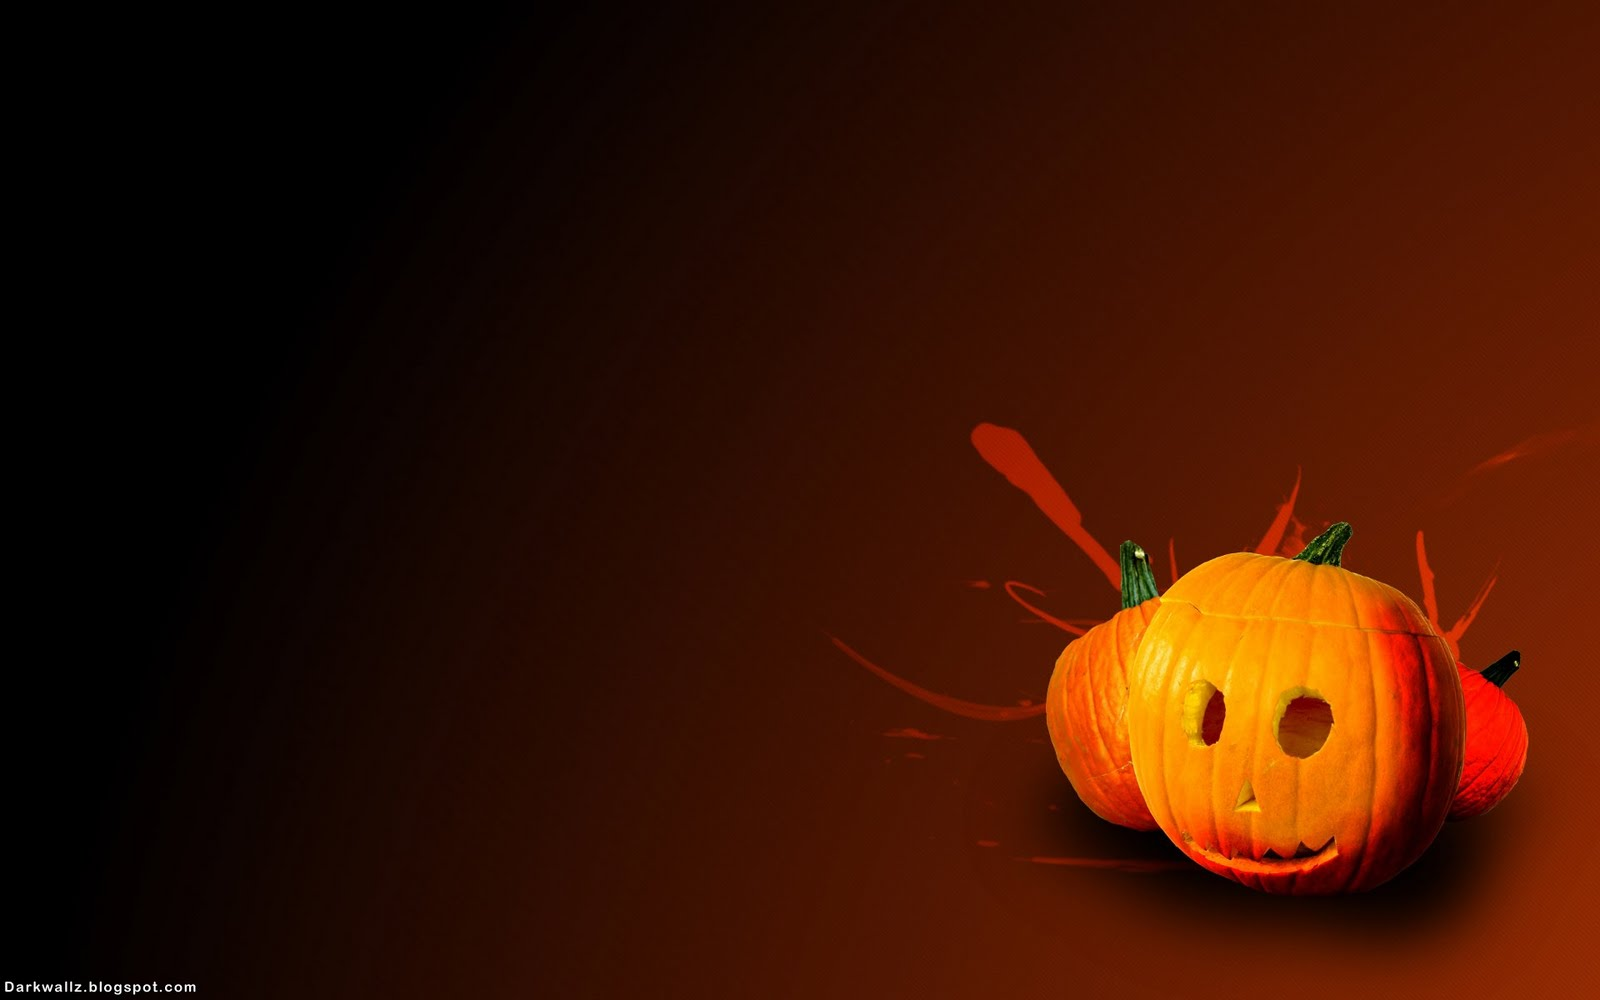 Halloween Wallpapers 28 | Dark Wallpaper Download